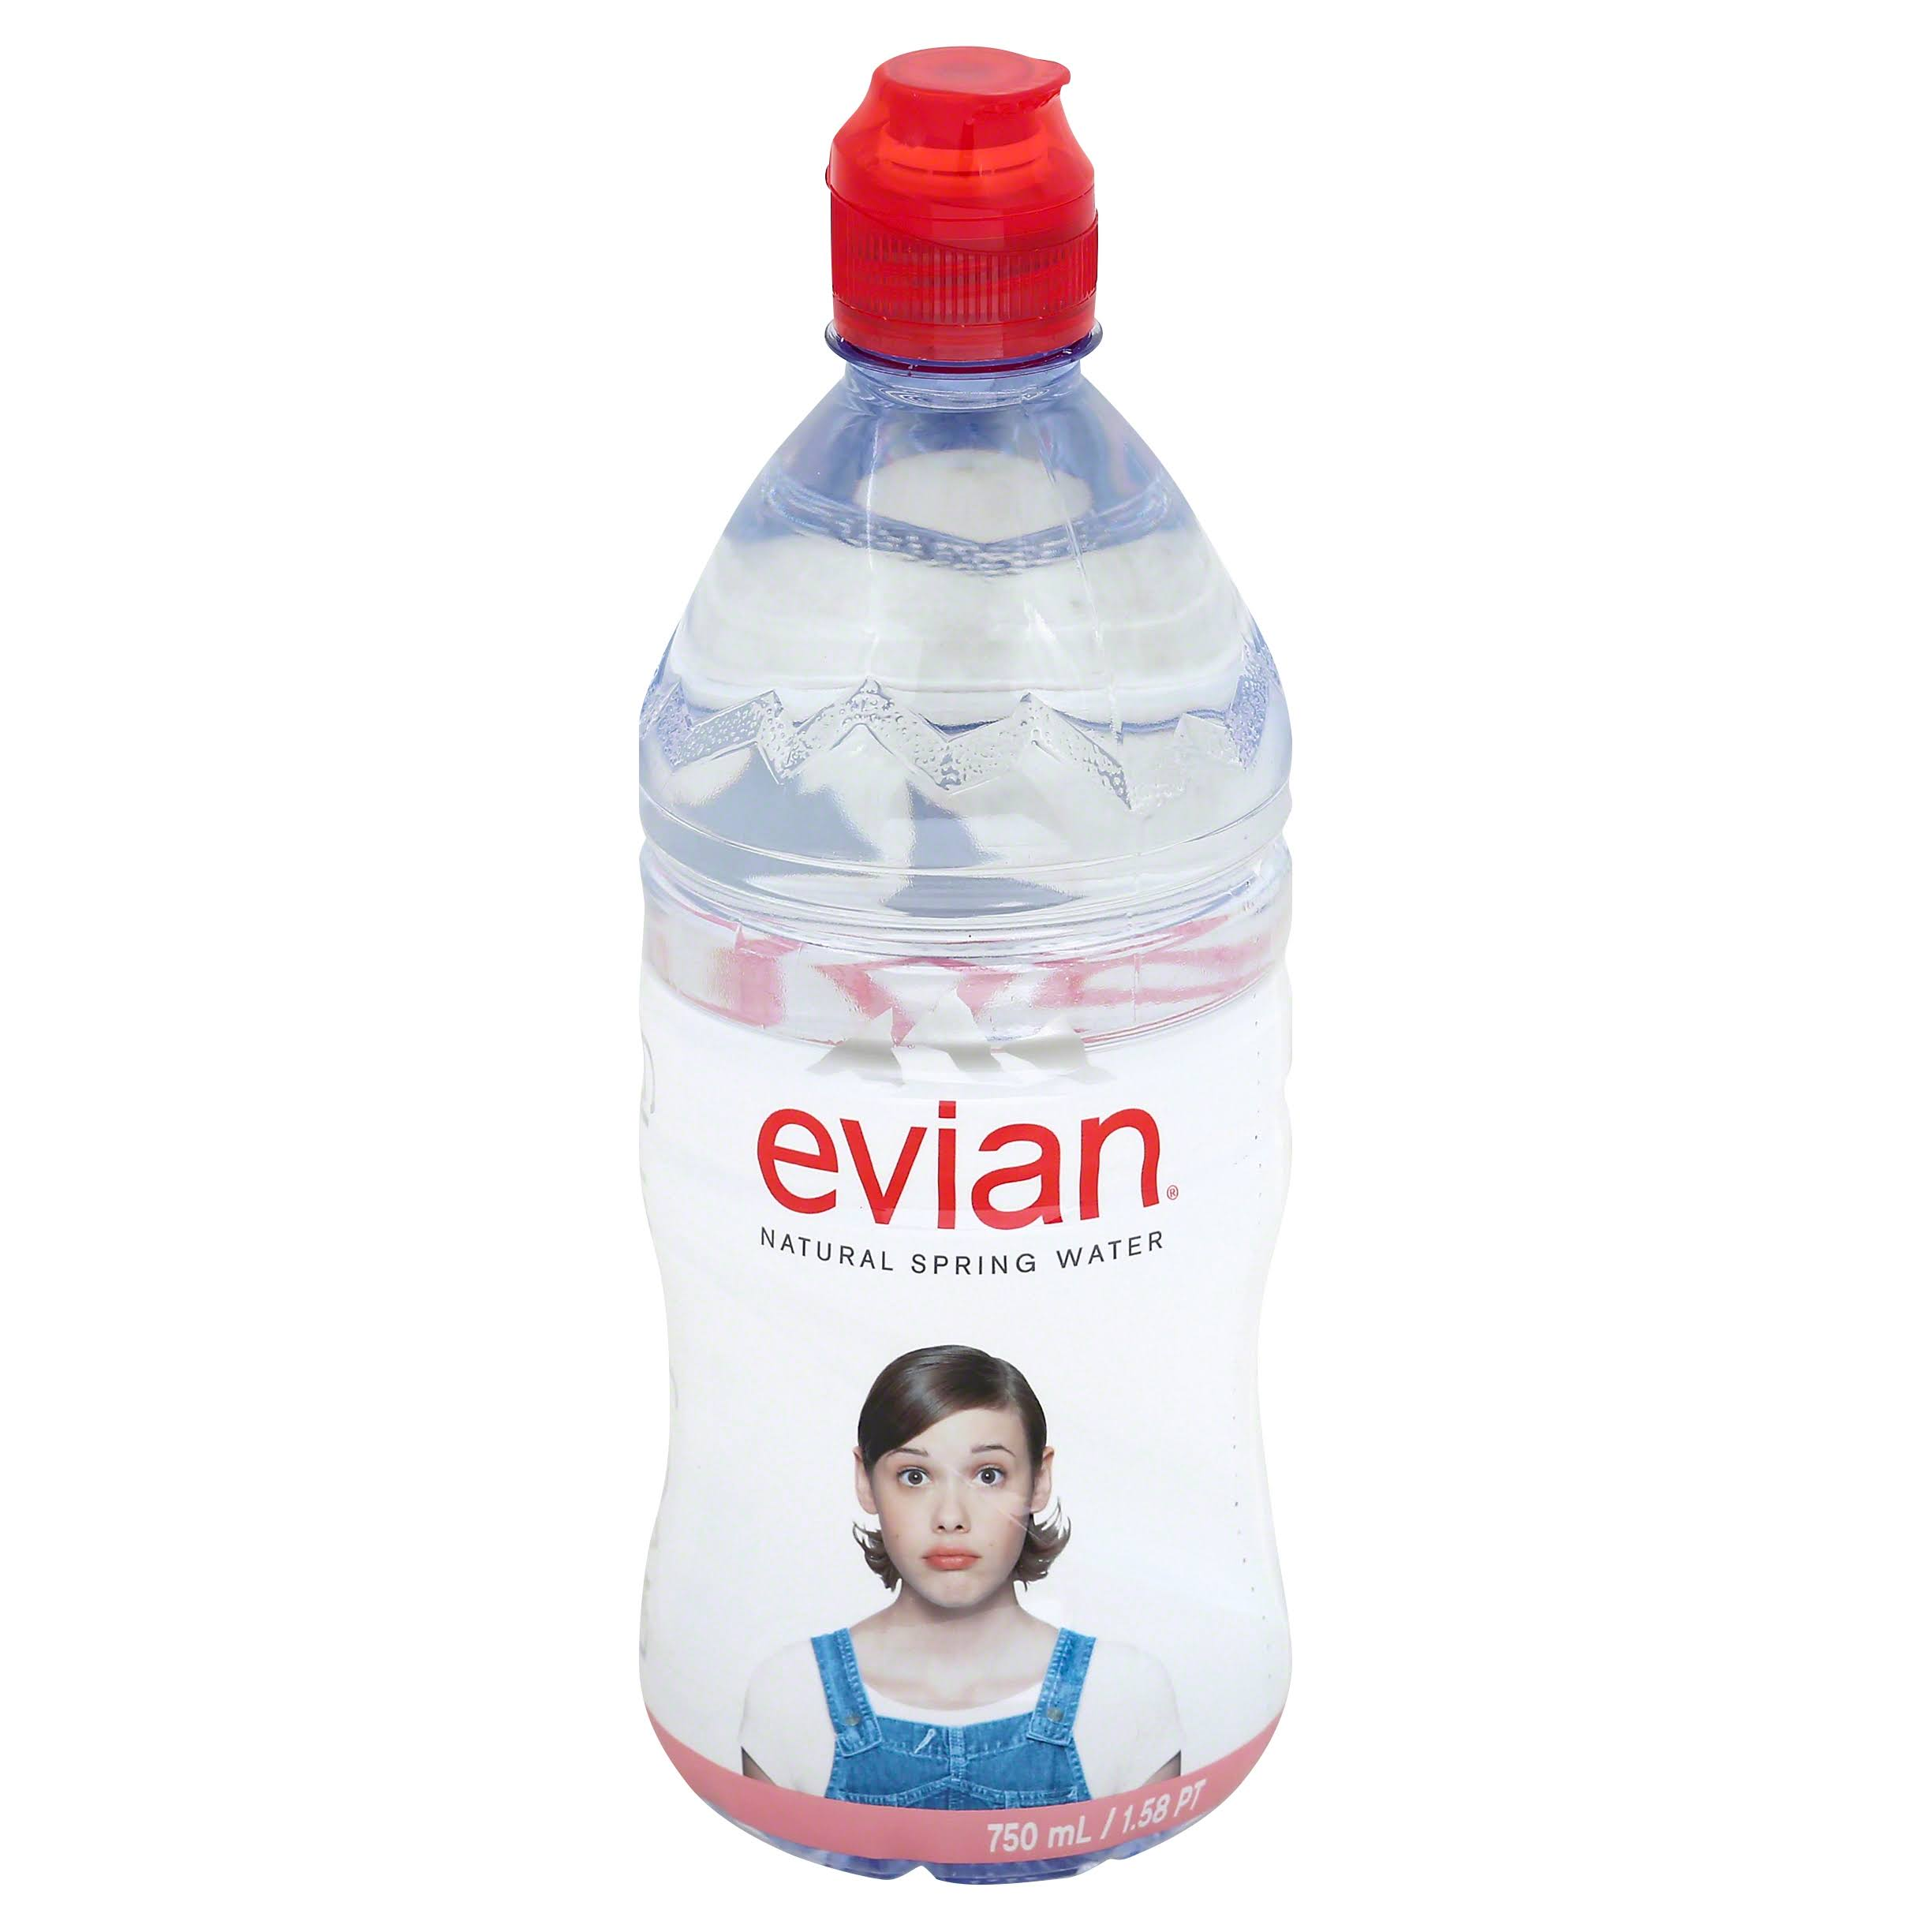 Evian Natural Spring Water - 750ml